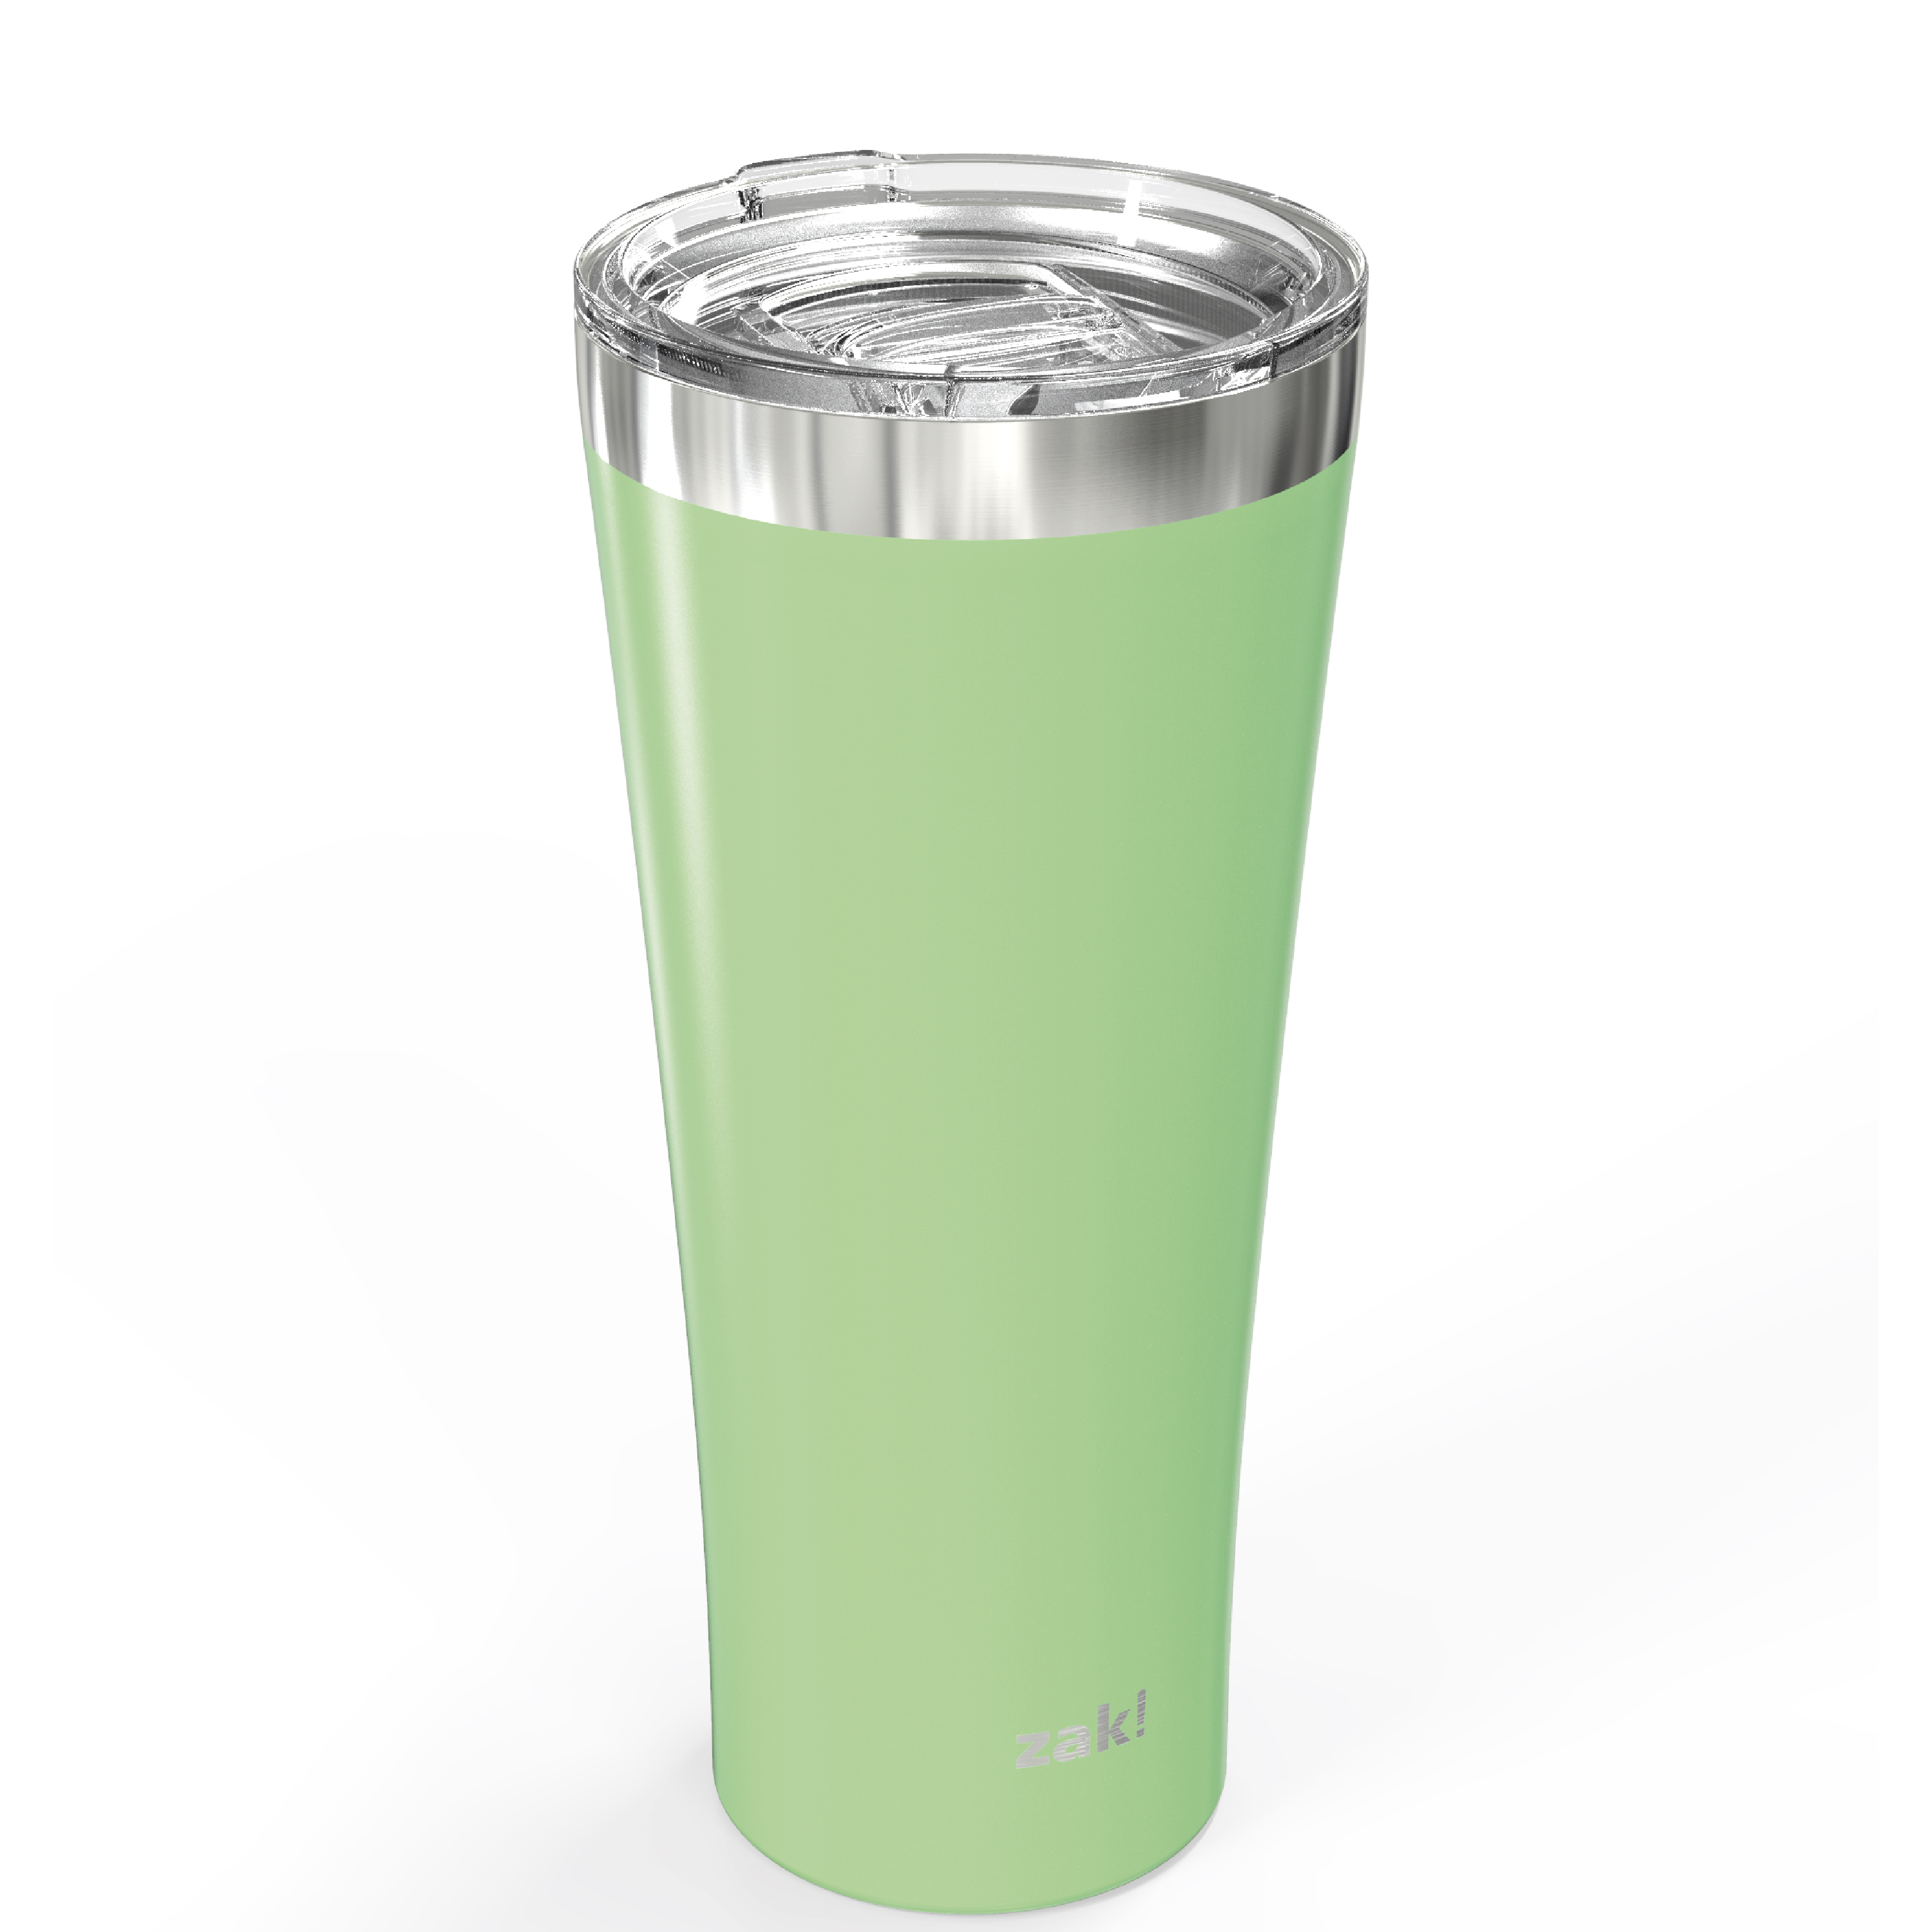 Alpine 30 ounce Stainless Steel Vacuum Insulated Tumbler with Straw, Neo Mint slideshow image 3